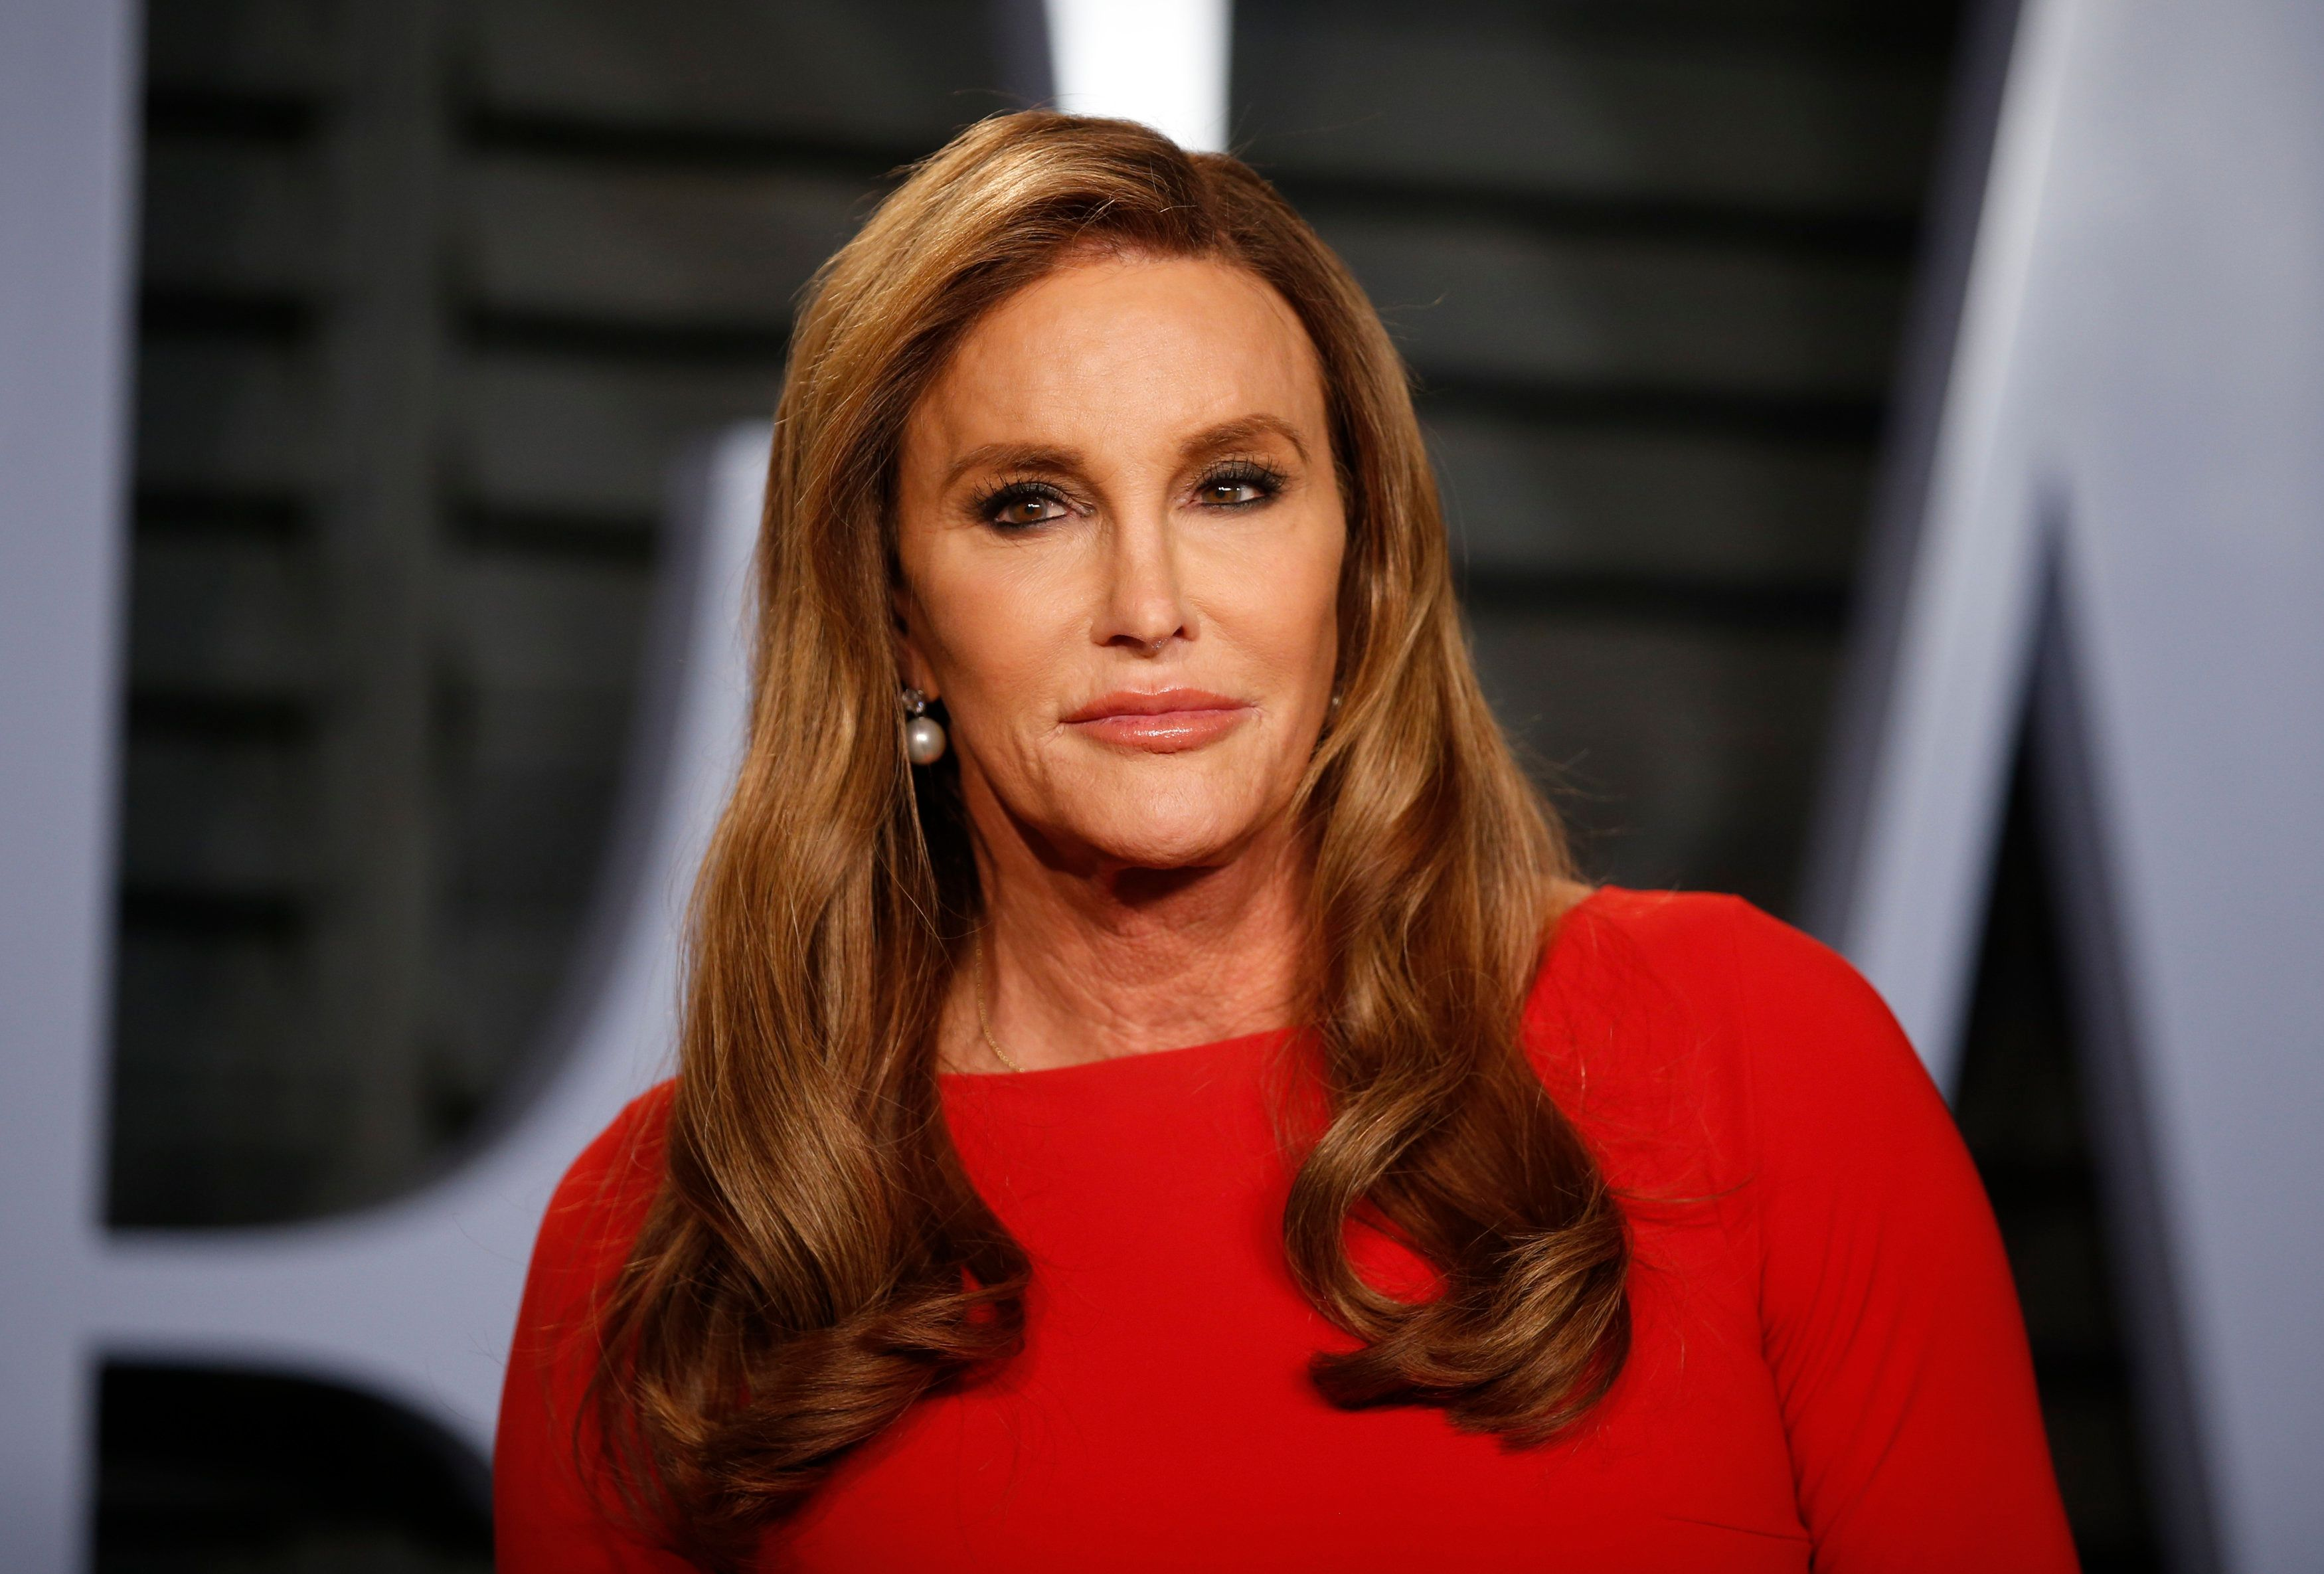 2018 Vanity Fair Oscar Party – Arrivals – Beverly Hills, California, U.S., 04/03/2018 –  Caitlyn Jenner. REUTERS/Danny Moloshok